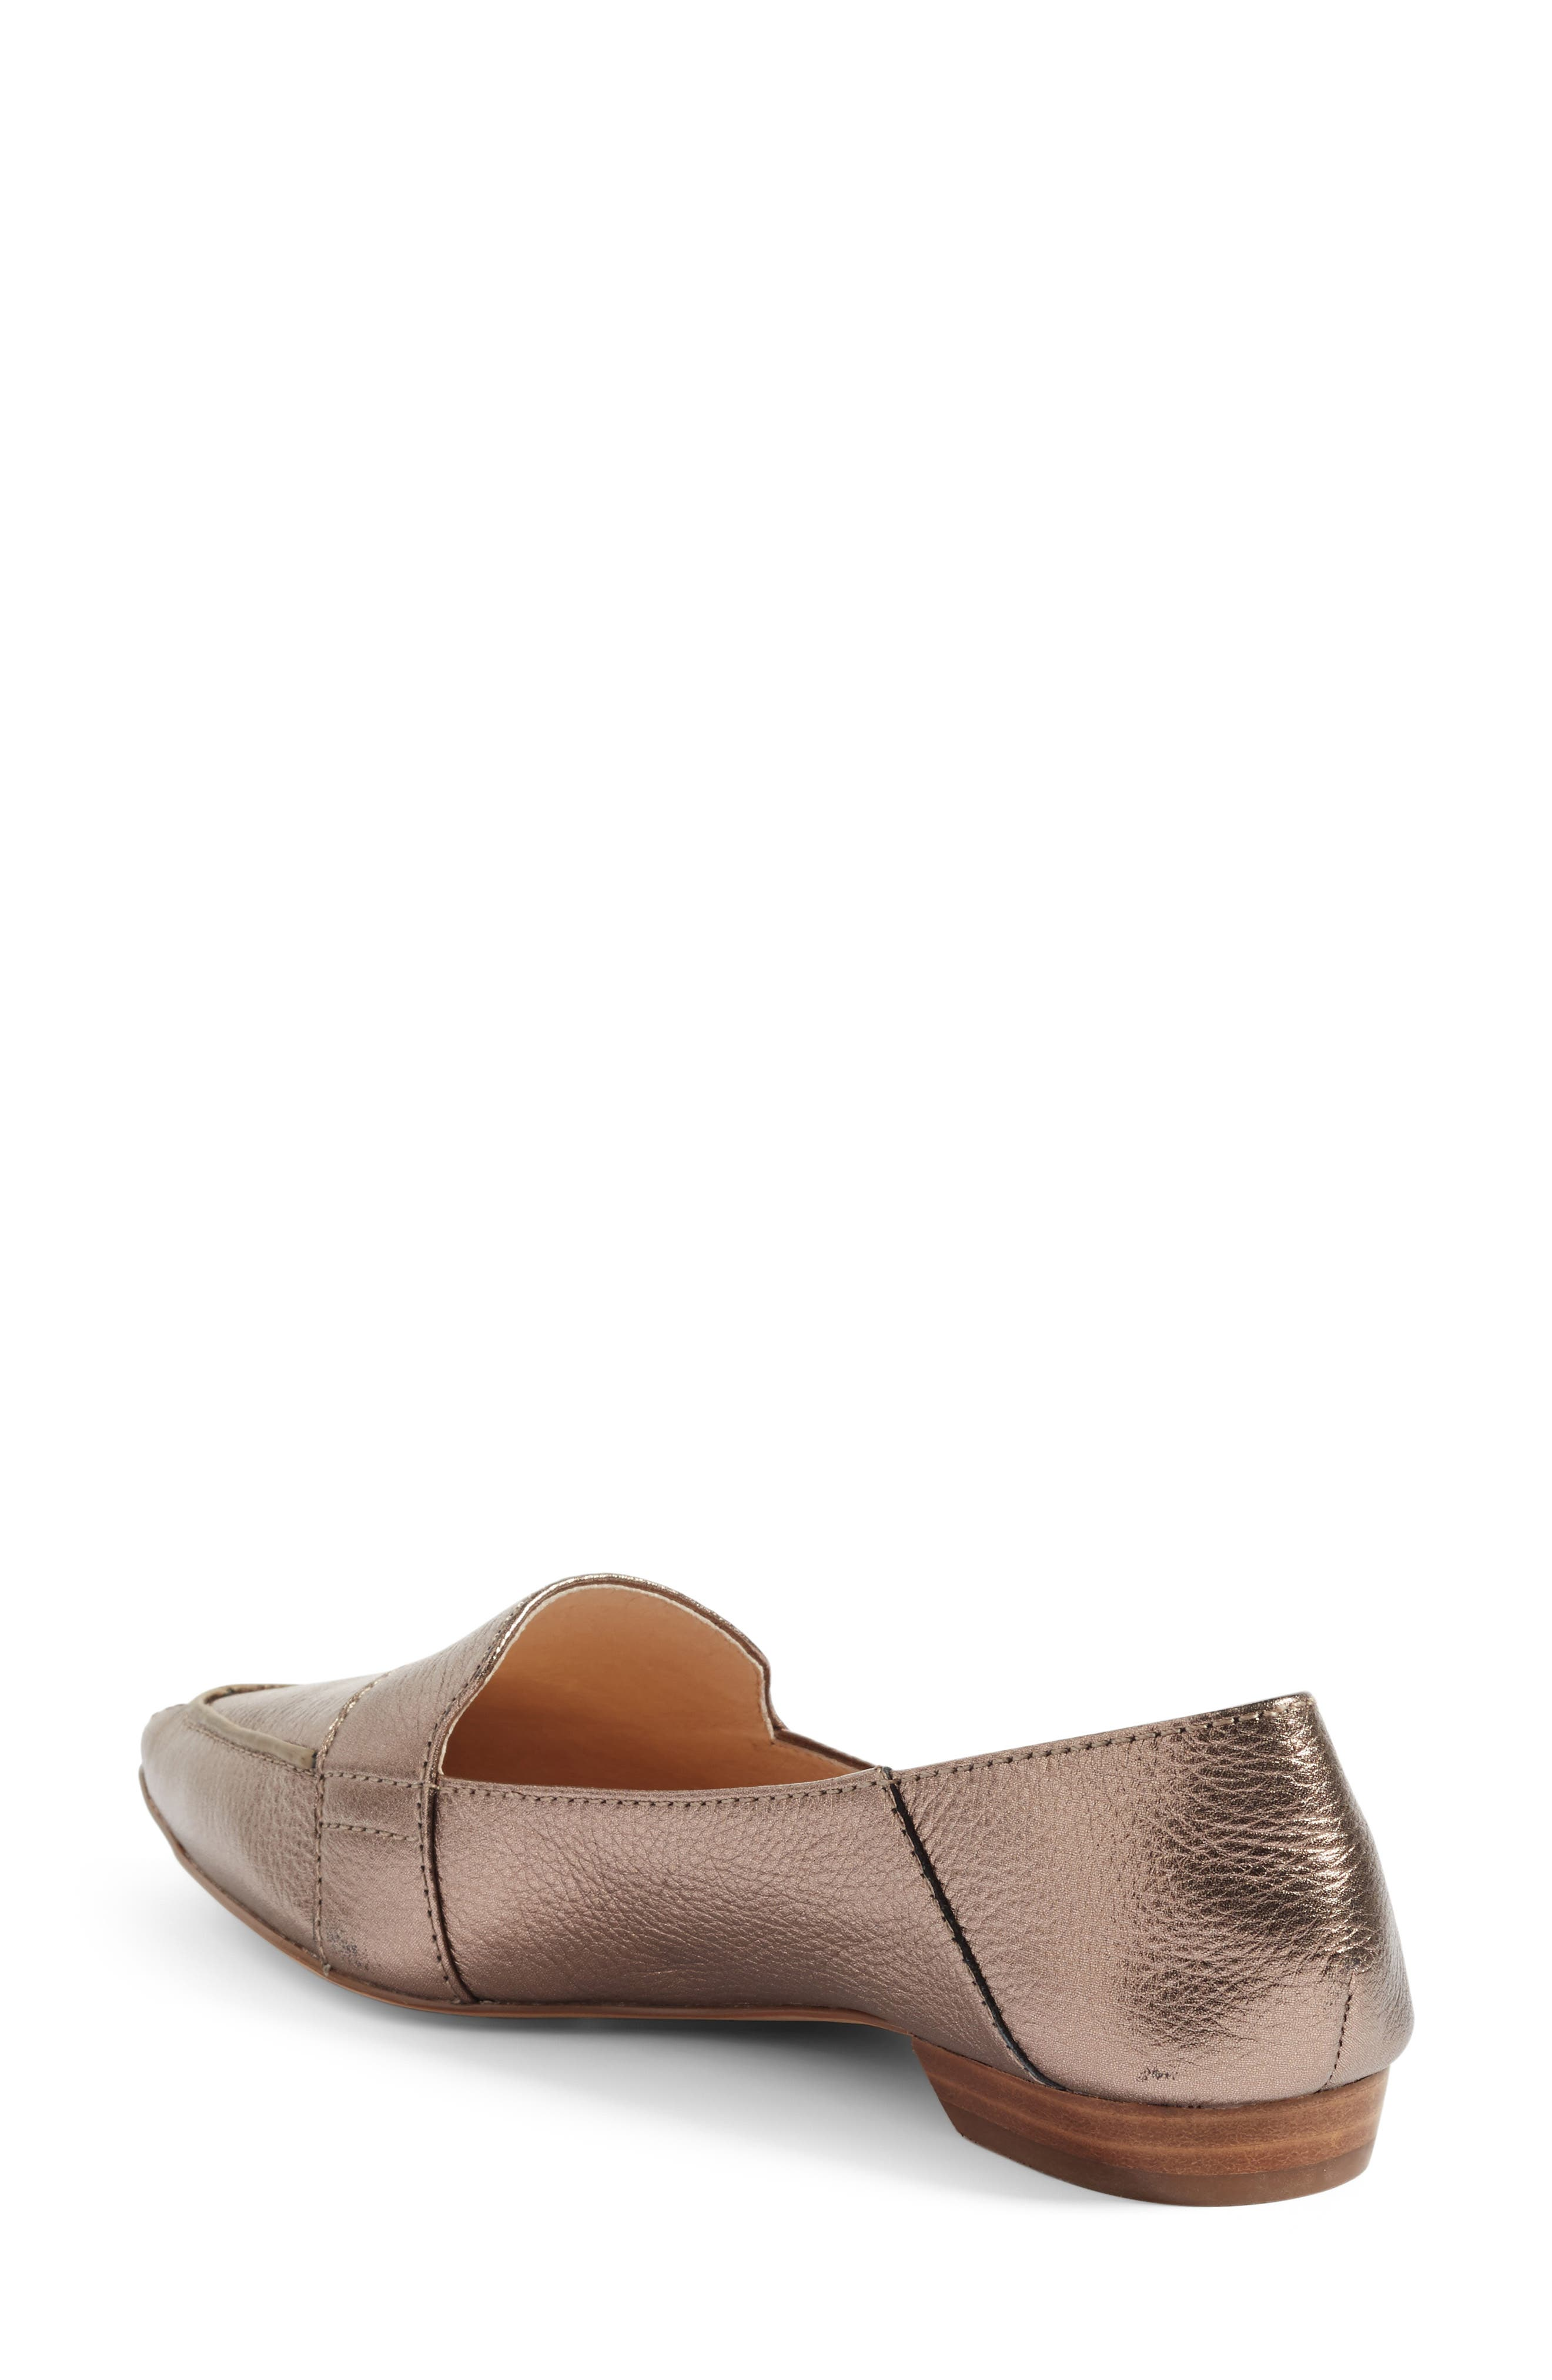 Alternate Image 2  - Vince Camuto Maita Pointy Toe Flat (Women) (Nordstrom Exclusive)